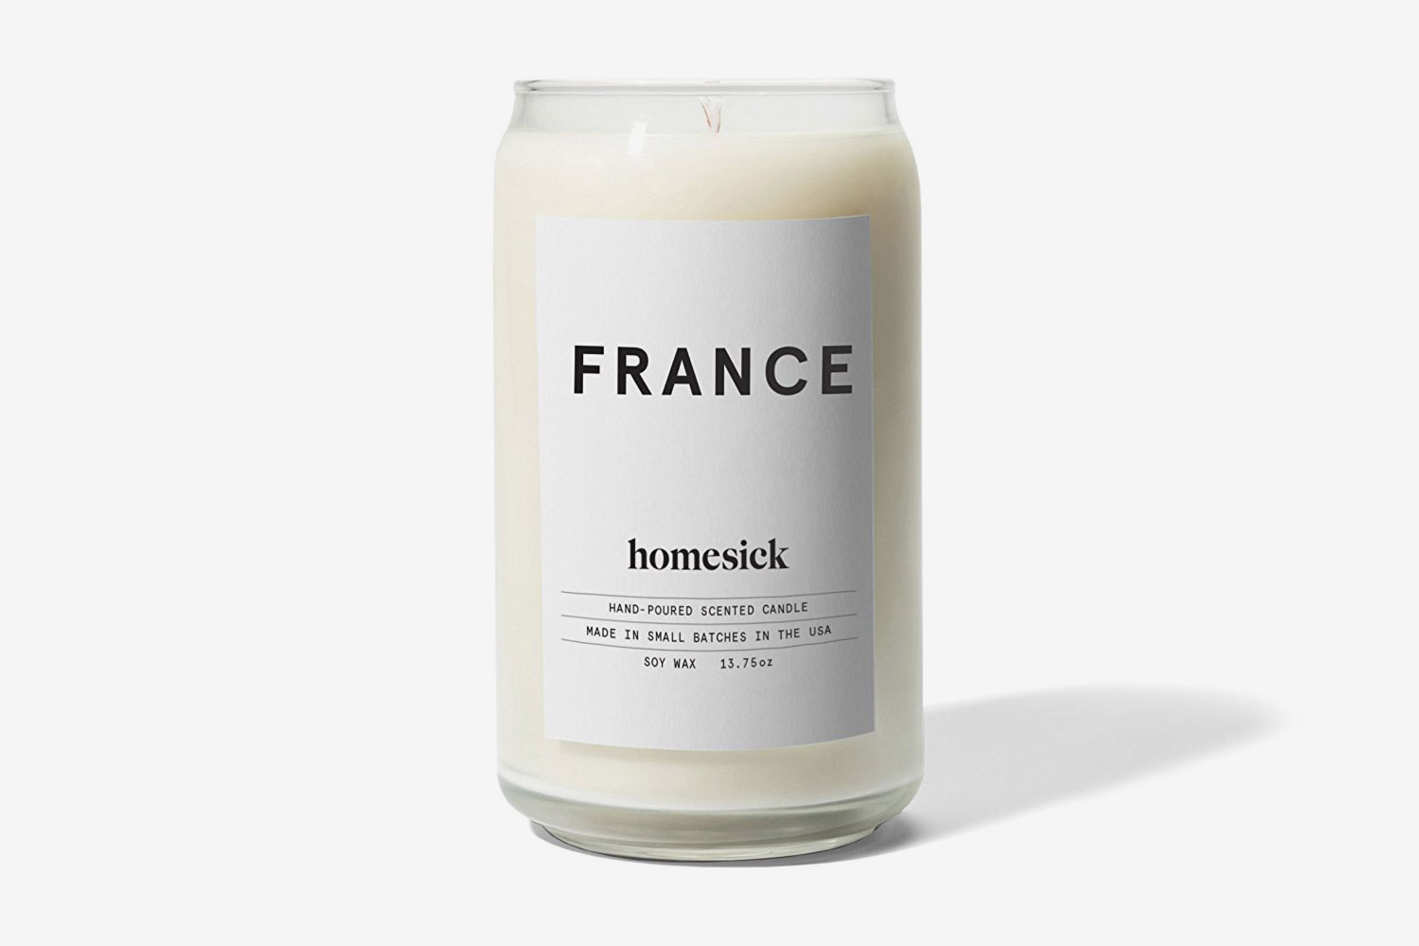 Homesick France Candle